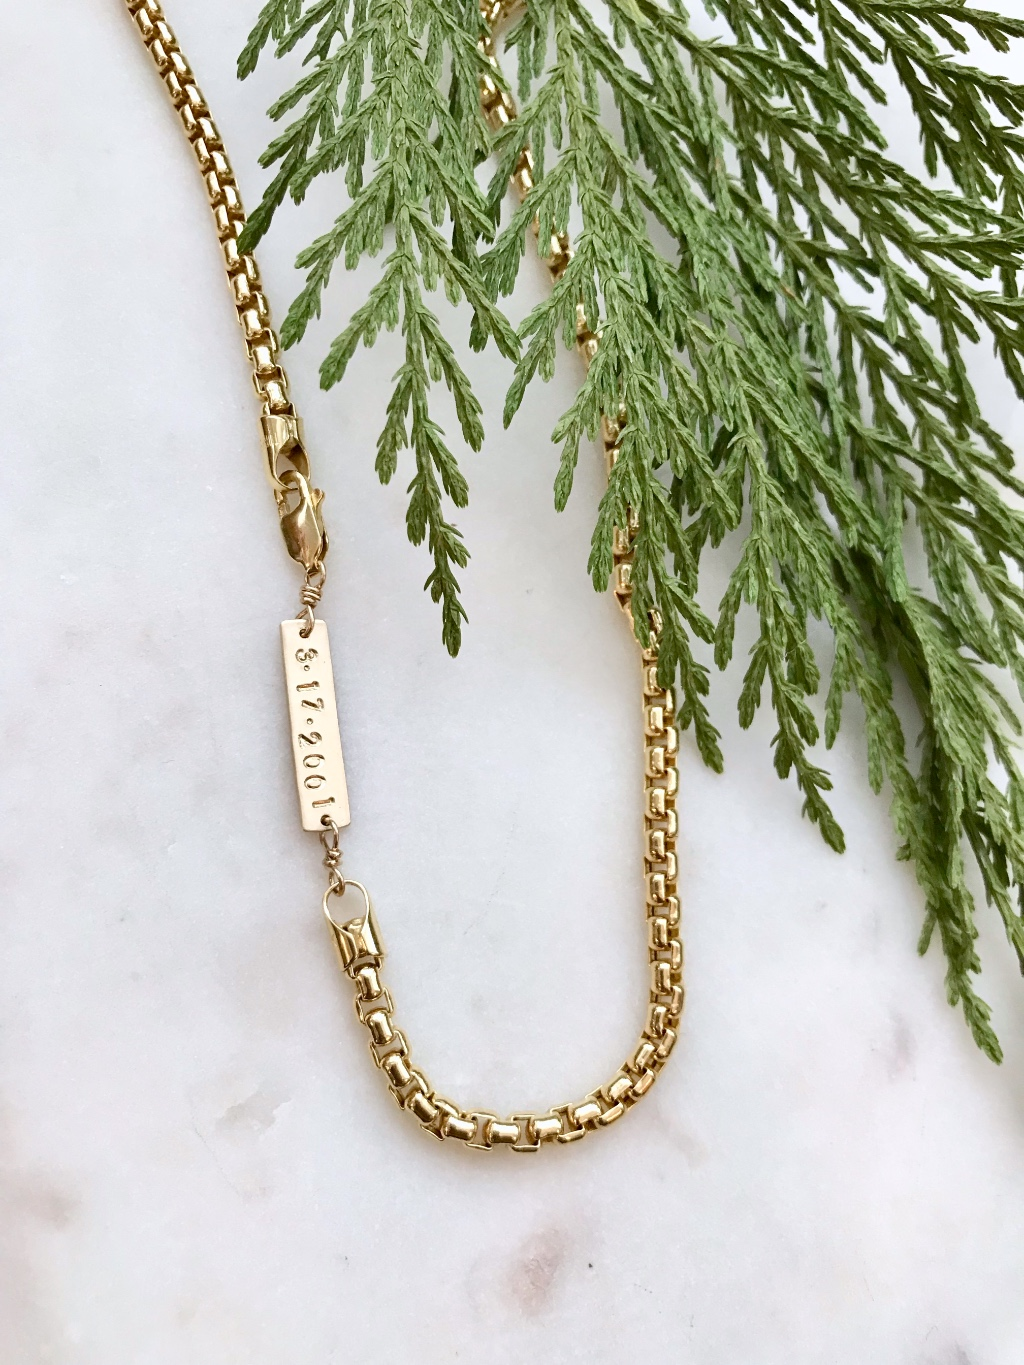 Personalized Men's Chains. The perfect subtle meaningful gift for him.